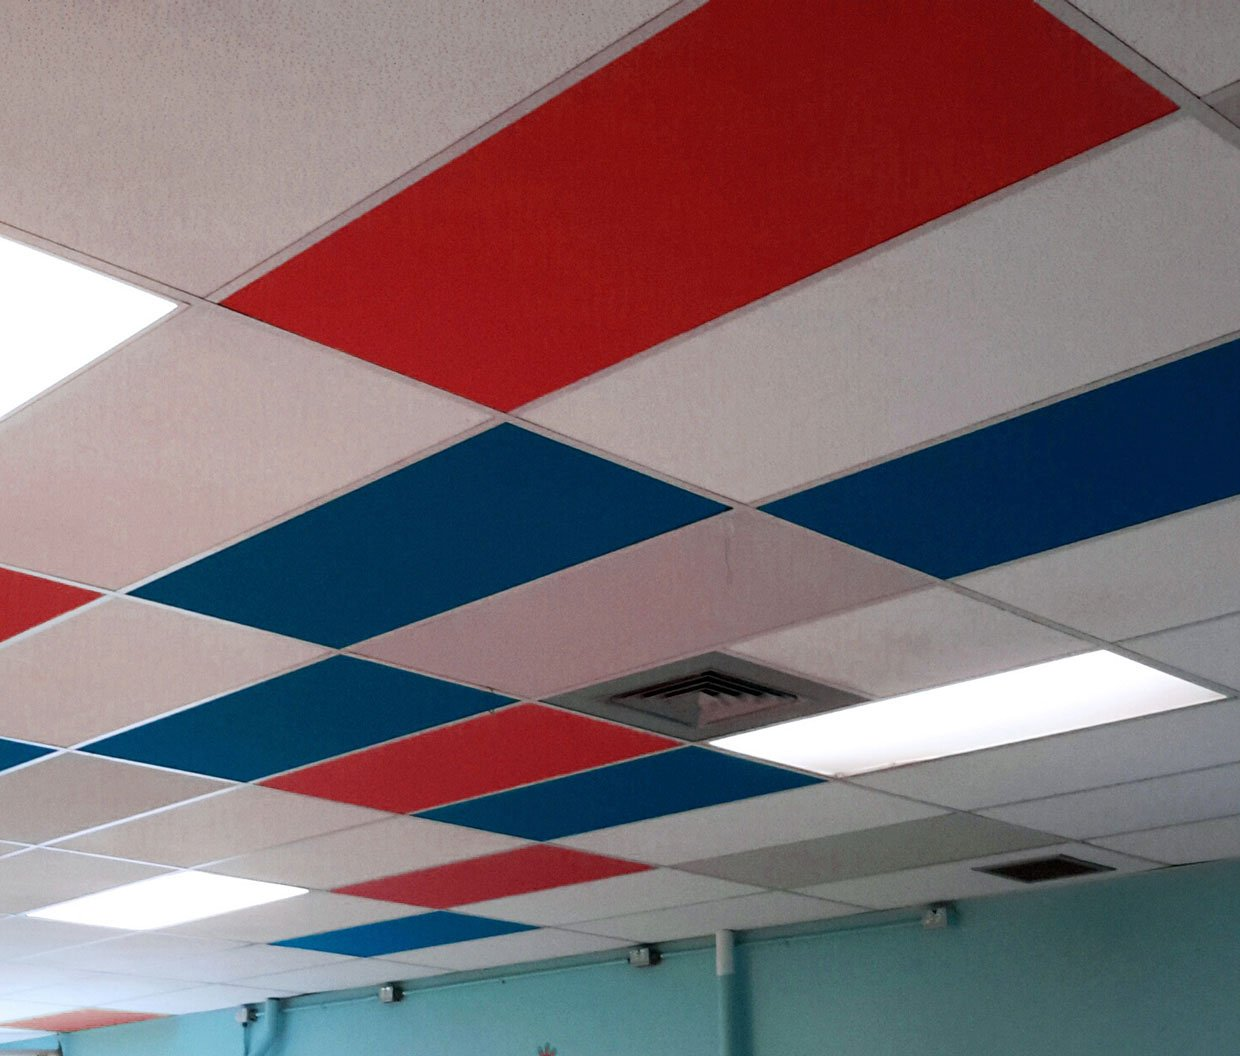 sound drop stick tiles insulating x acoustic ceilling on ceiling